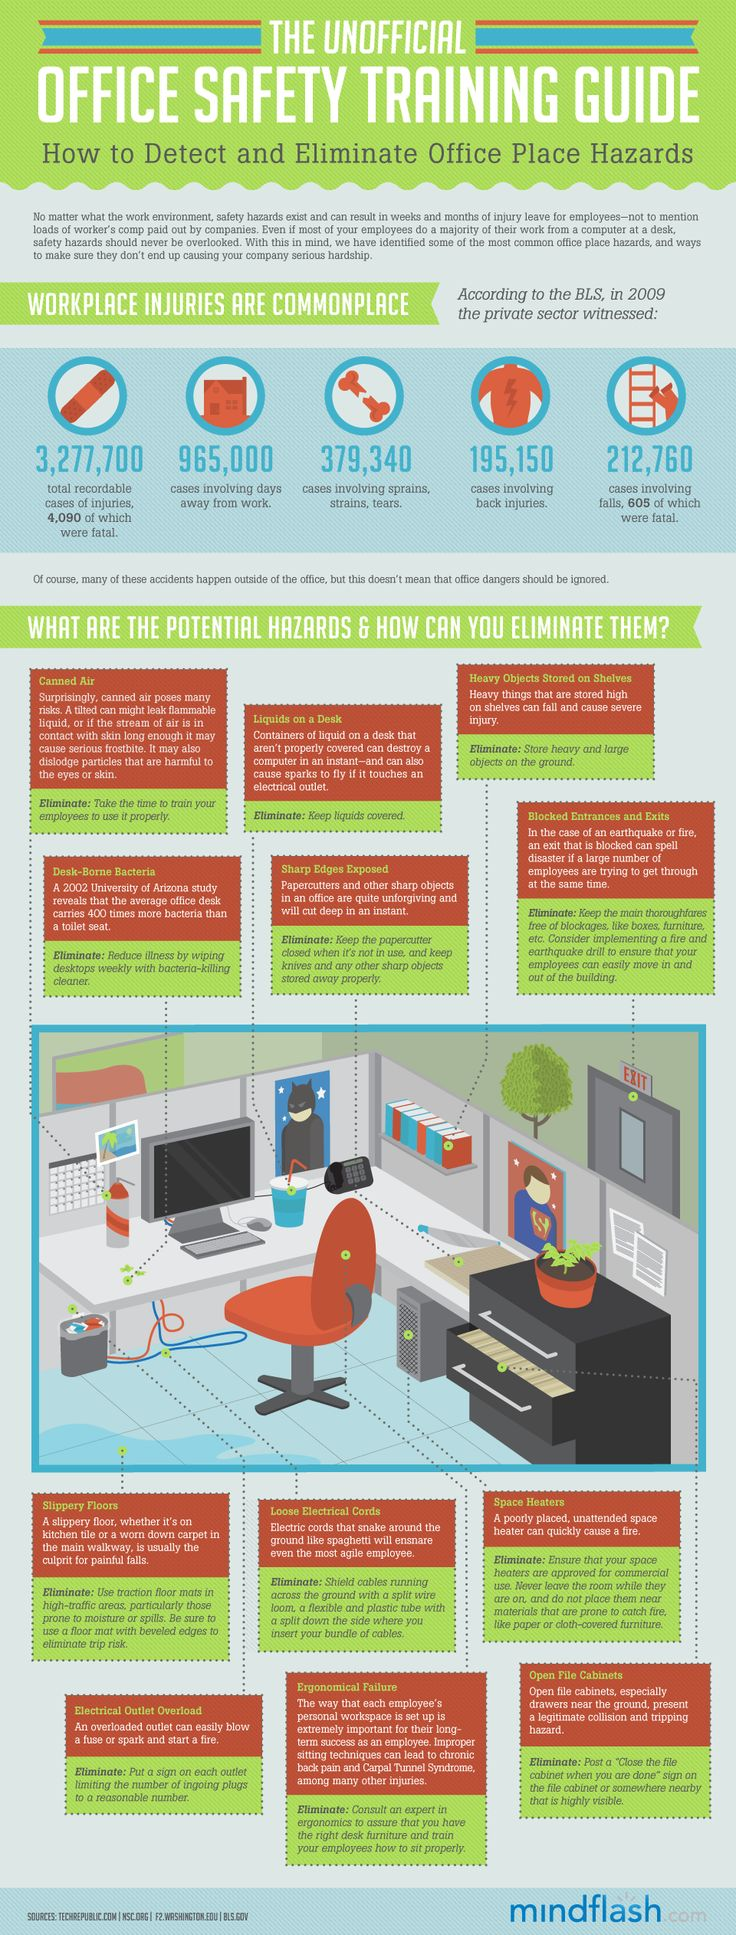 Office Safety:How To Detect & Eliminate Office Place Hazards #infographic